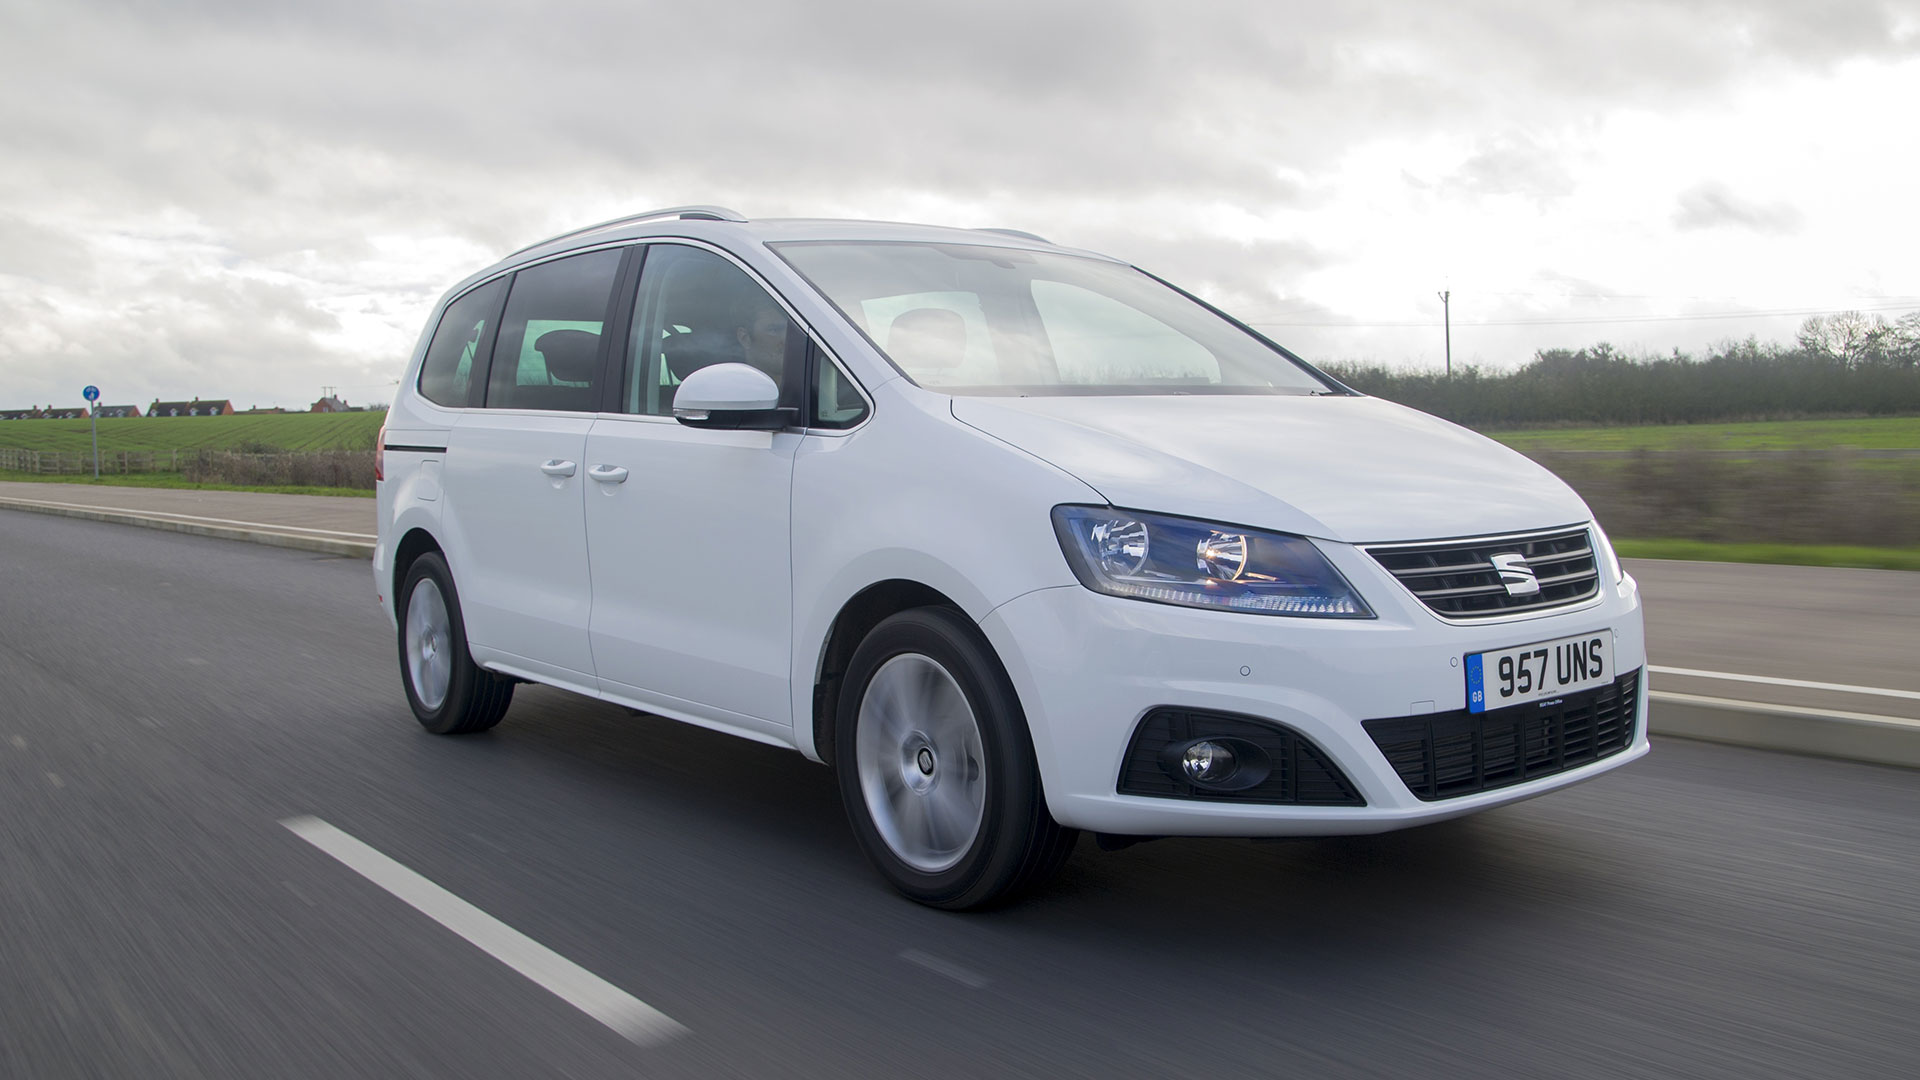 7 Seater Cars For Sale On Auto Trader Uk